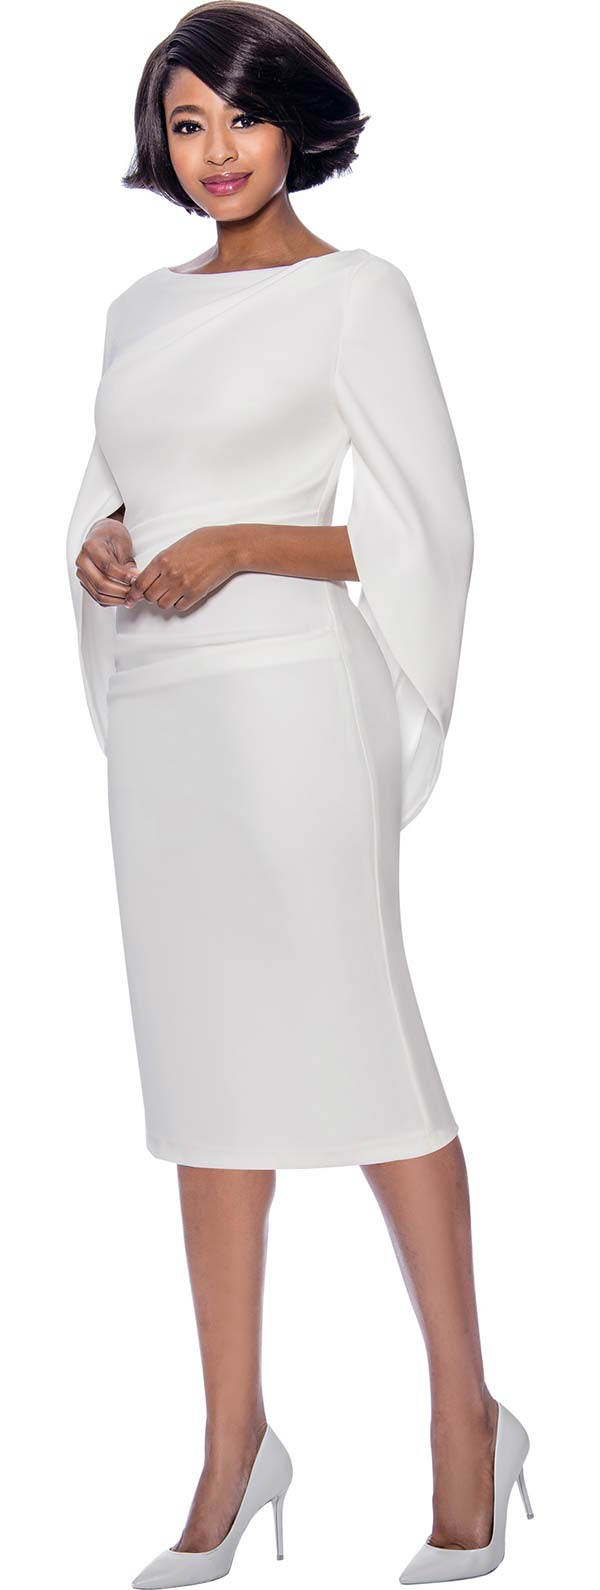 Terramina 7816-White - Ladies Ruched Dress With Vee Back Neckline And Sleeves Joined Behind Waist